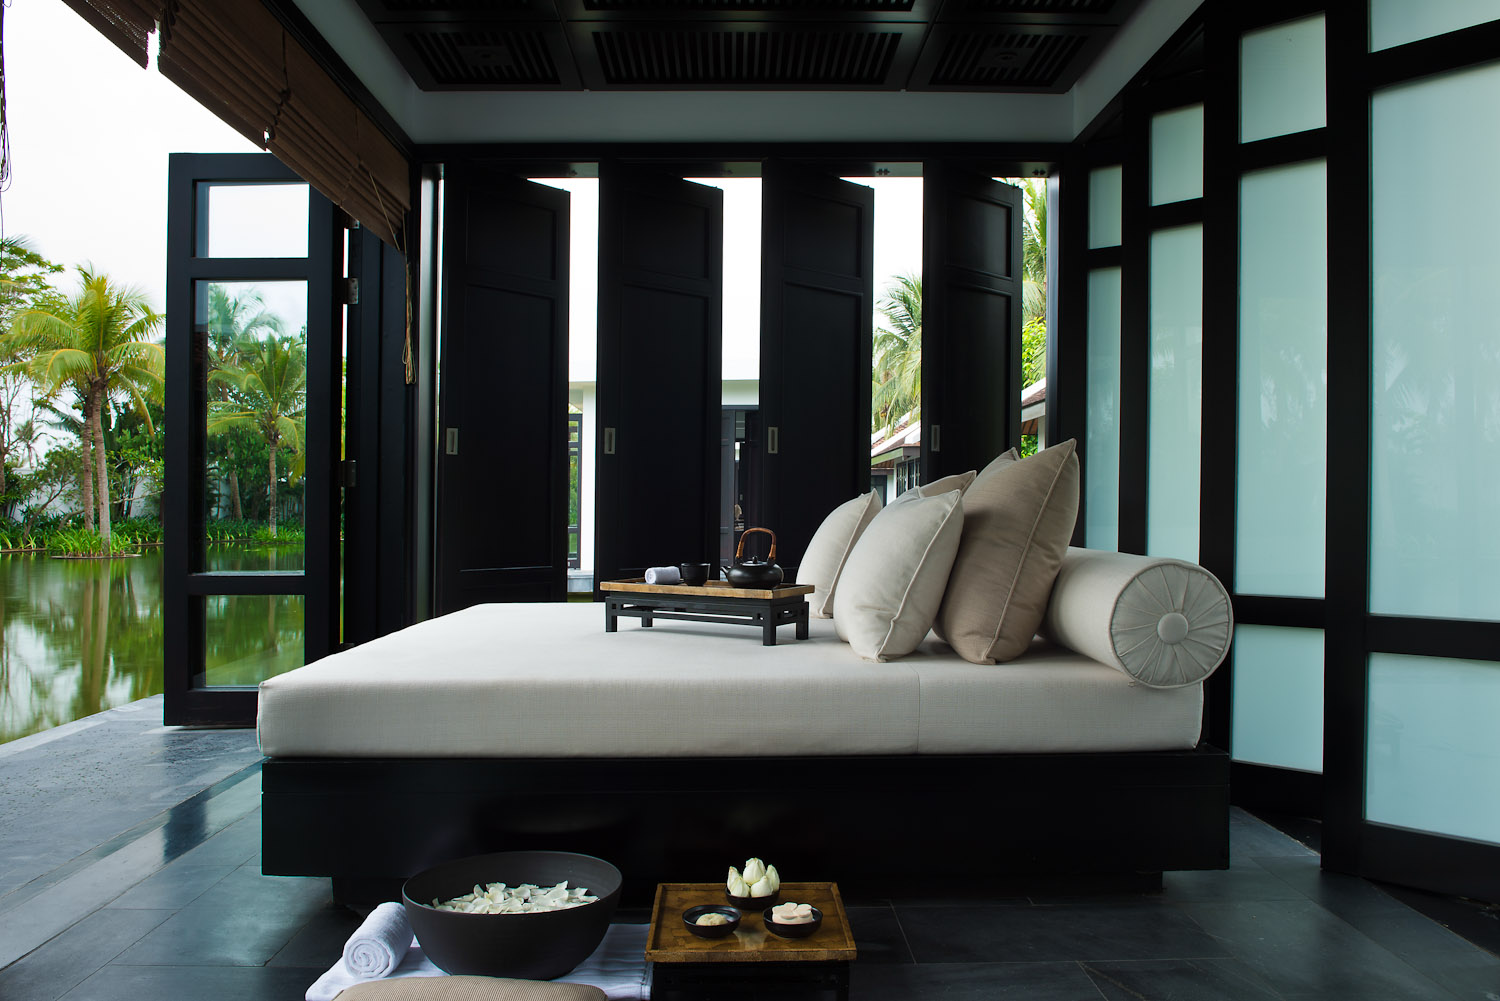 Reset Your Clock To Holiday Time With A Treatment At Nam Haiu0027s Tranquil Spa.